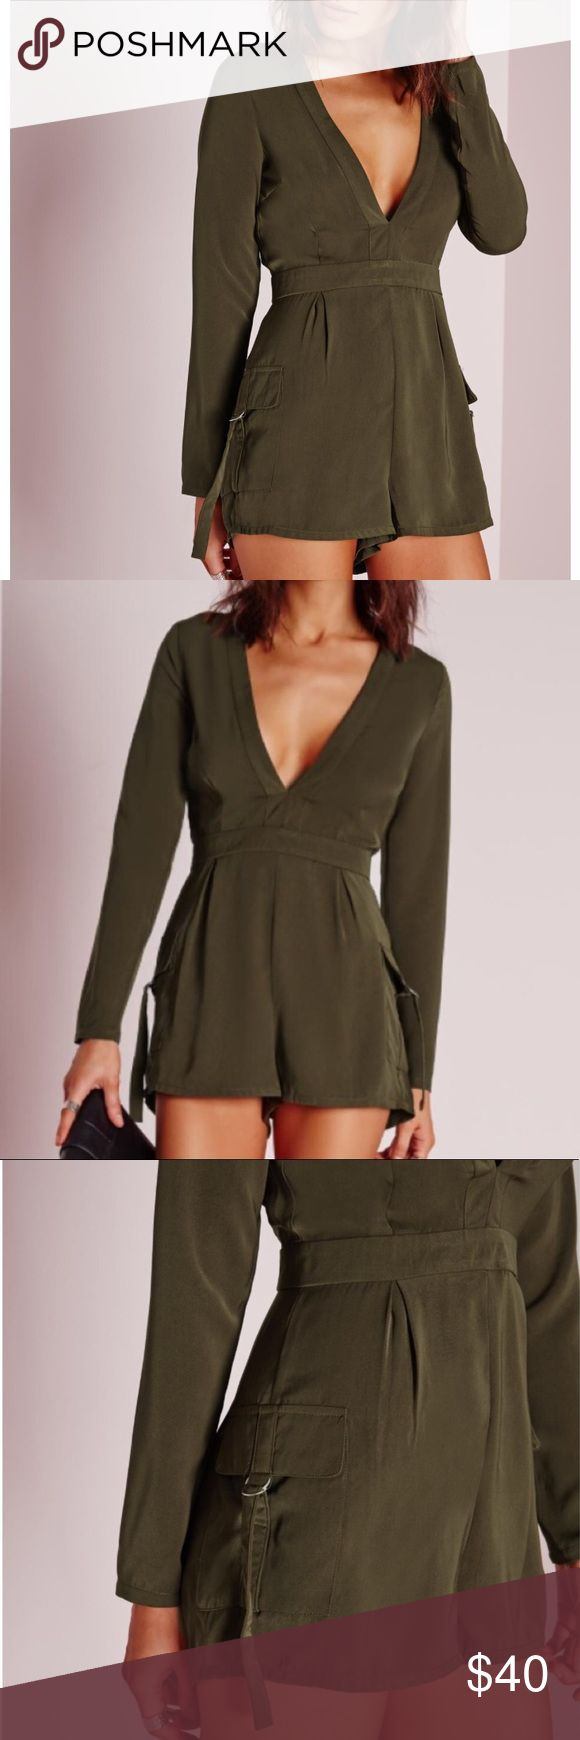 """NWT Missguided Olive Khaki Plunge Romper w/ Pocket In a seasonal olive khaki colored romper with a plunge n-neck neckline, you'll be turnin' those heads. Long Sleeve with back partial zip closire. For a throw-on-go style, team with black caged heels and a patent clutch for all-round glam. UK size 12 is equivalent to a US size 8. 2 side patch pockets with foldover buckle closure.  Measurements are approximate.  Laying flat:  Armpit to armpit: 19"""" Length: 31"""" Fabric: Polyester Missguided Pants…"""